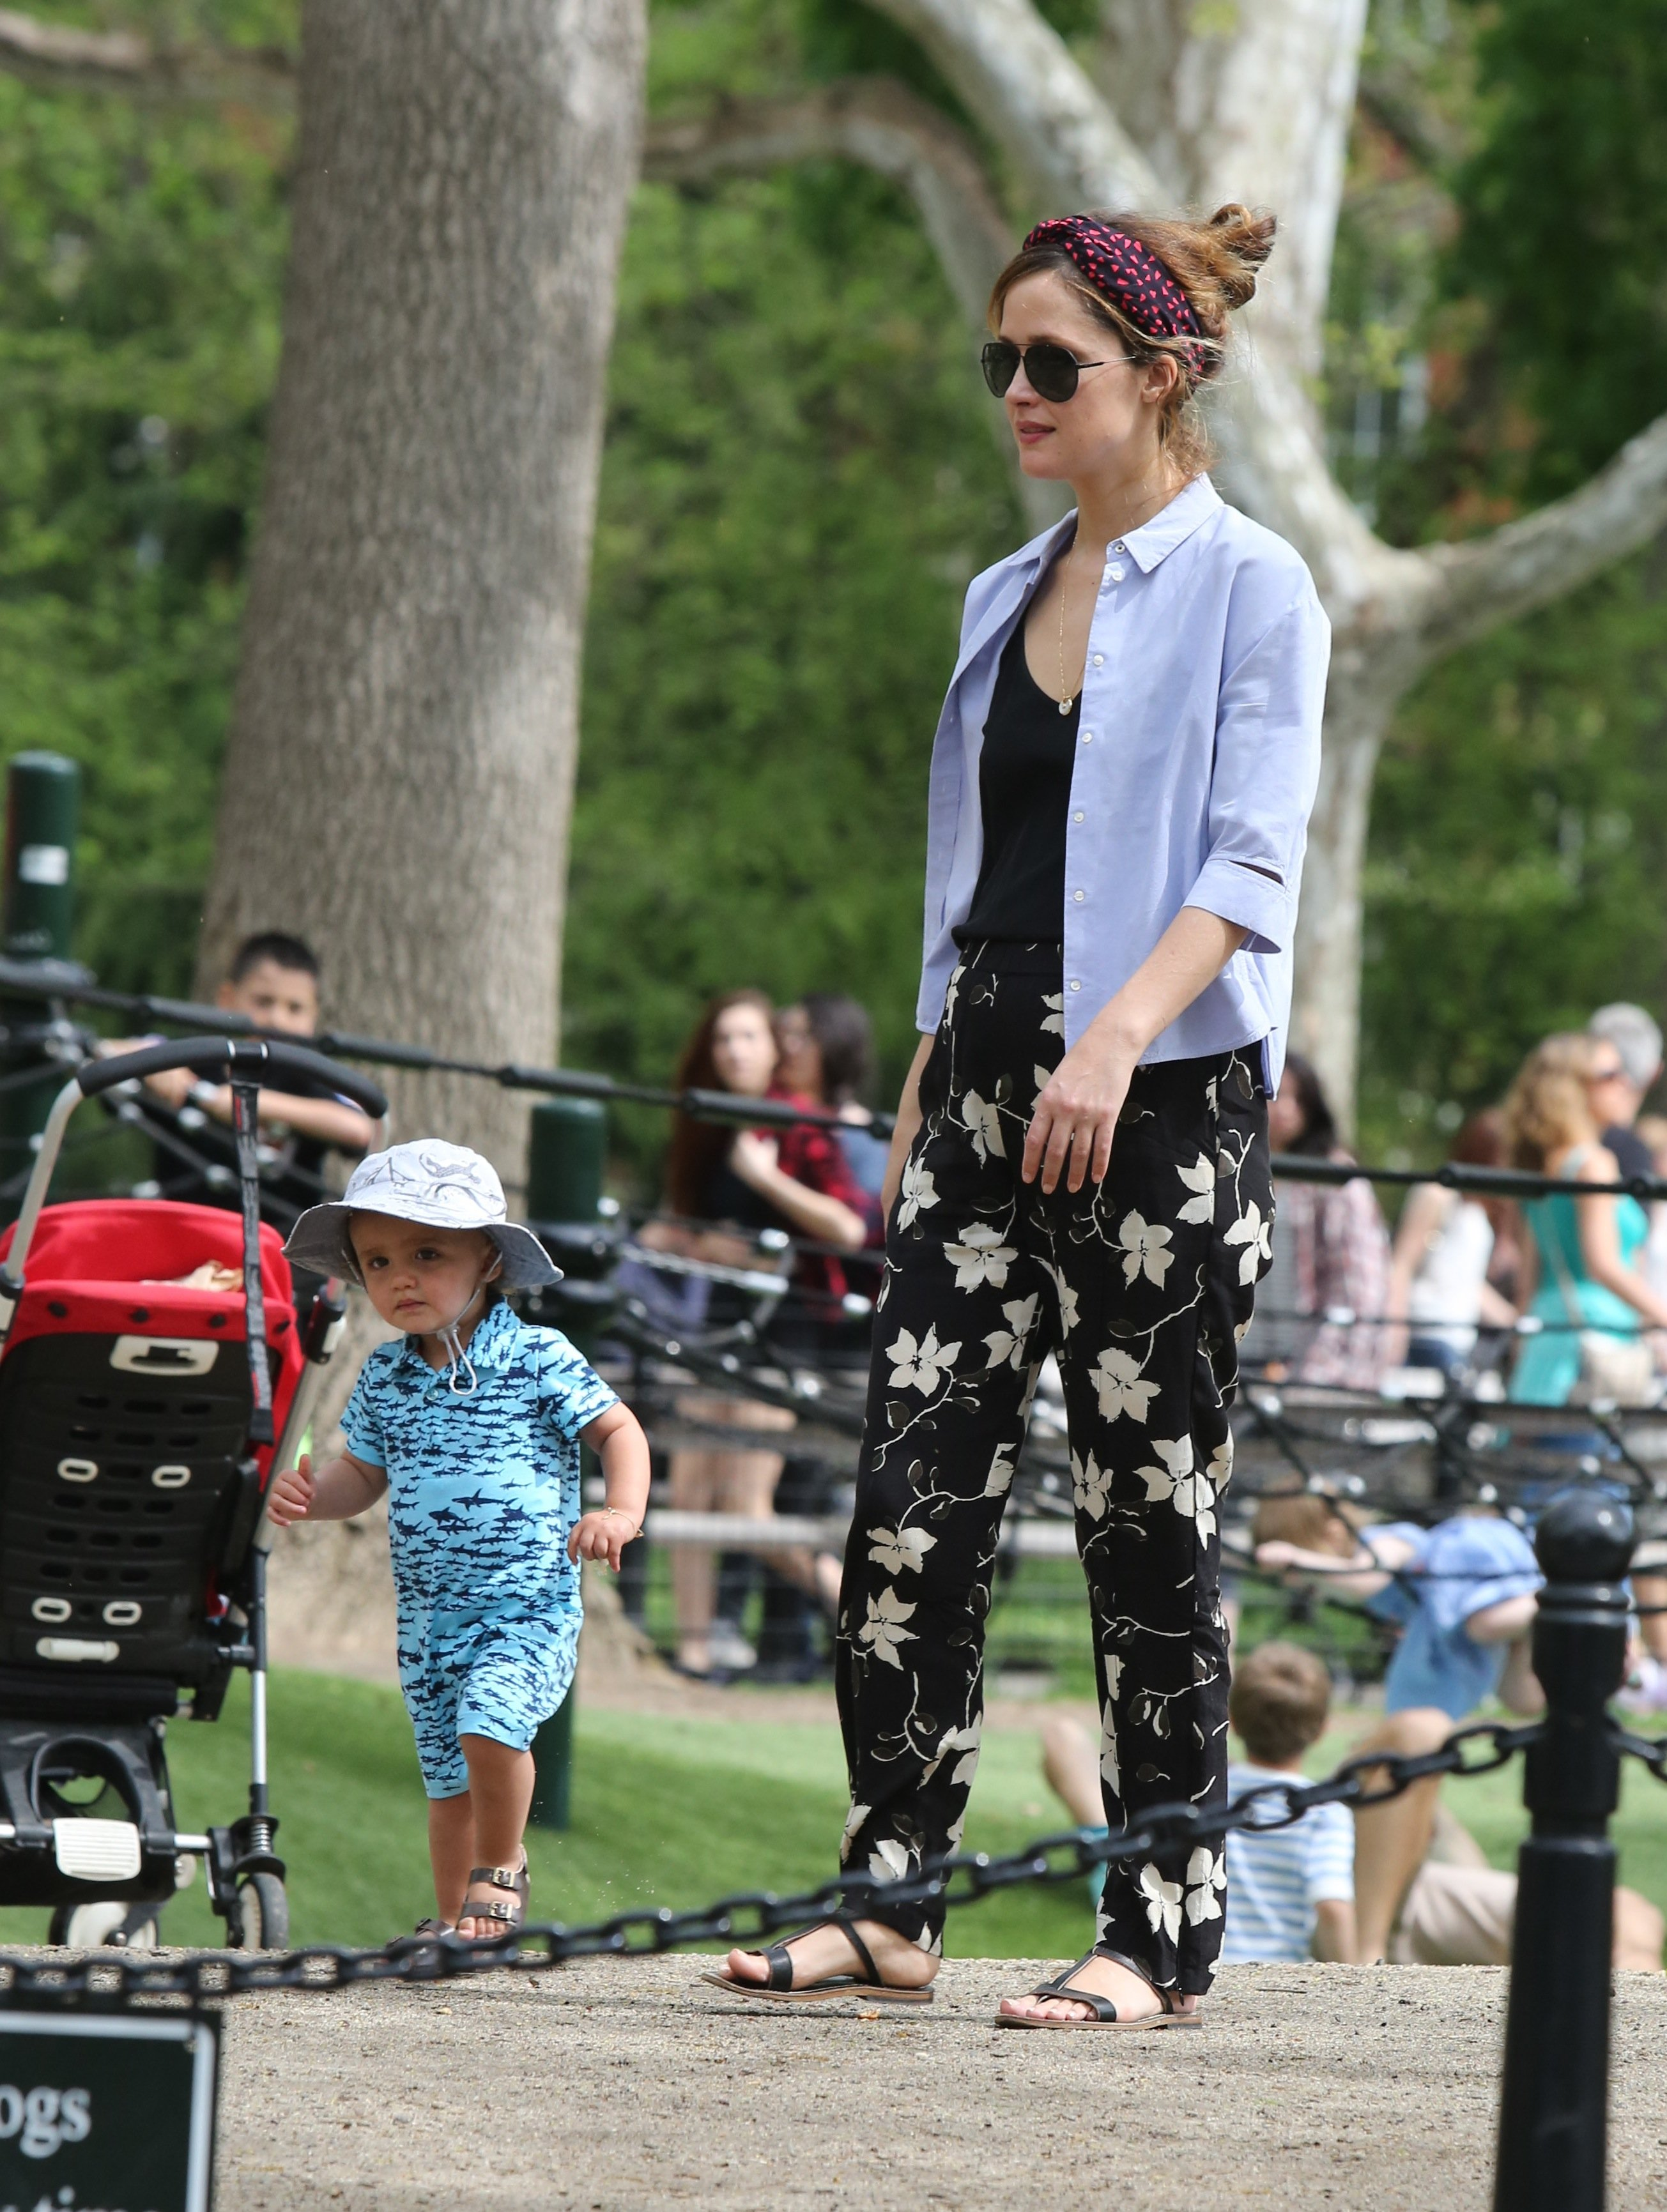 -New York, NY - 04/29/17 Rose Byrne and son Rocco Cannavale playing in the park with a friend   -PICTURED: Rose Byrne, Rocco Cannavale -, Image: 330630405, License: Rights-managed, Restrictions: , Model Release: no, Credit line: Profimedia, INSTAR Images